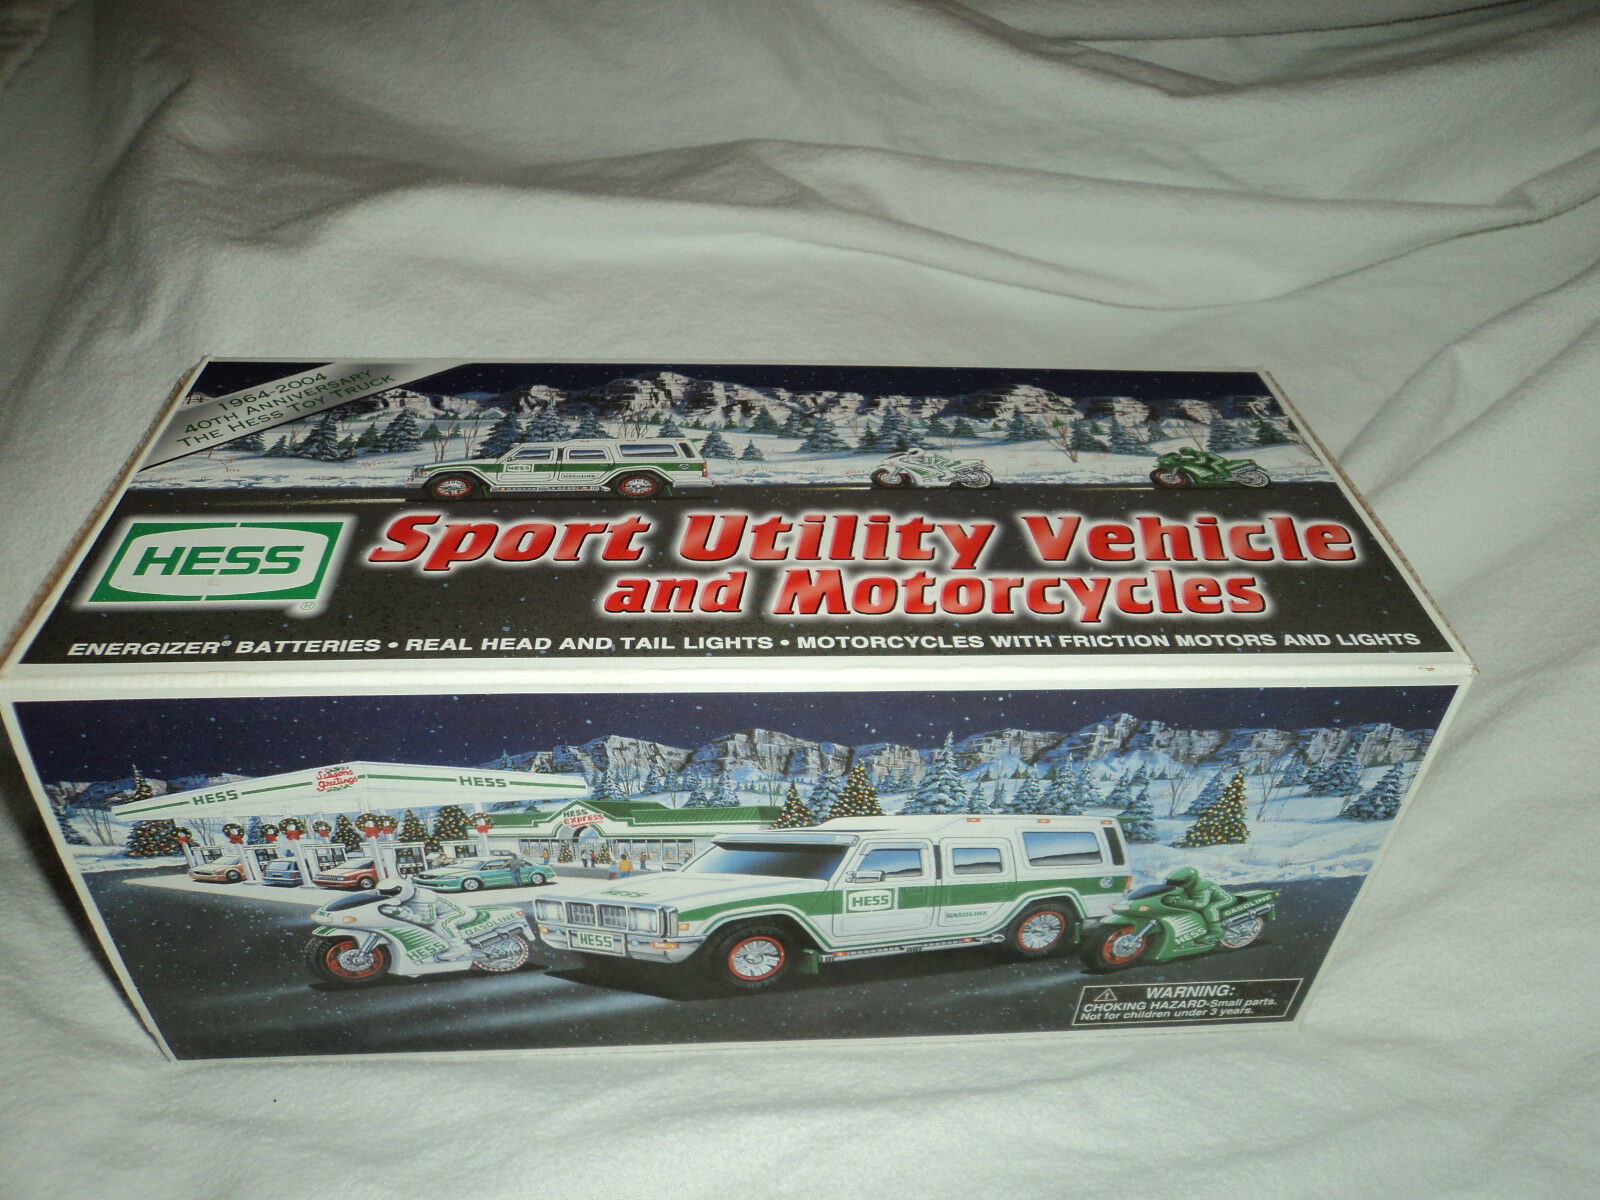 Hess Sport Utility Vehicle and Motorcycles 2004 Mint Condition NIB